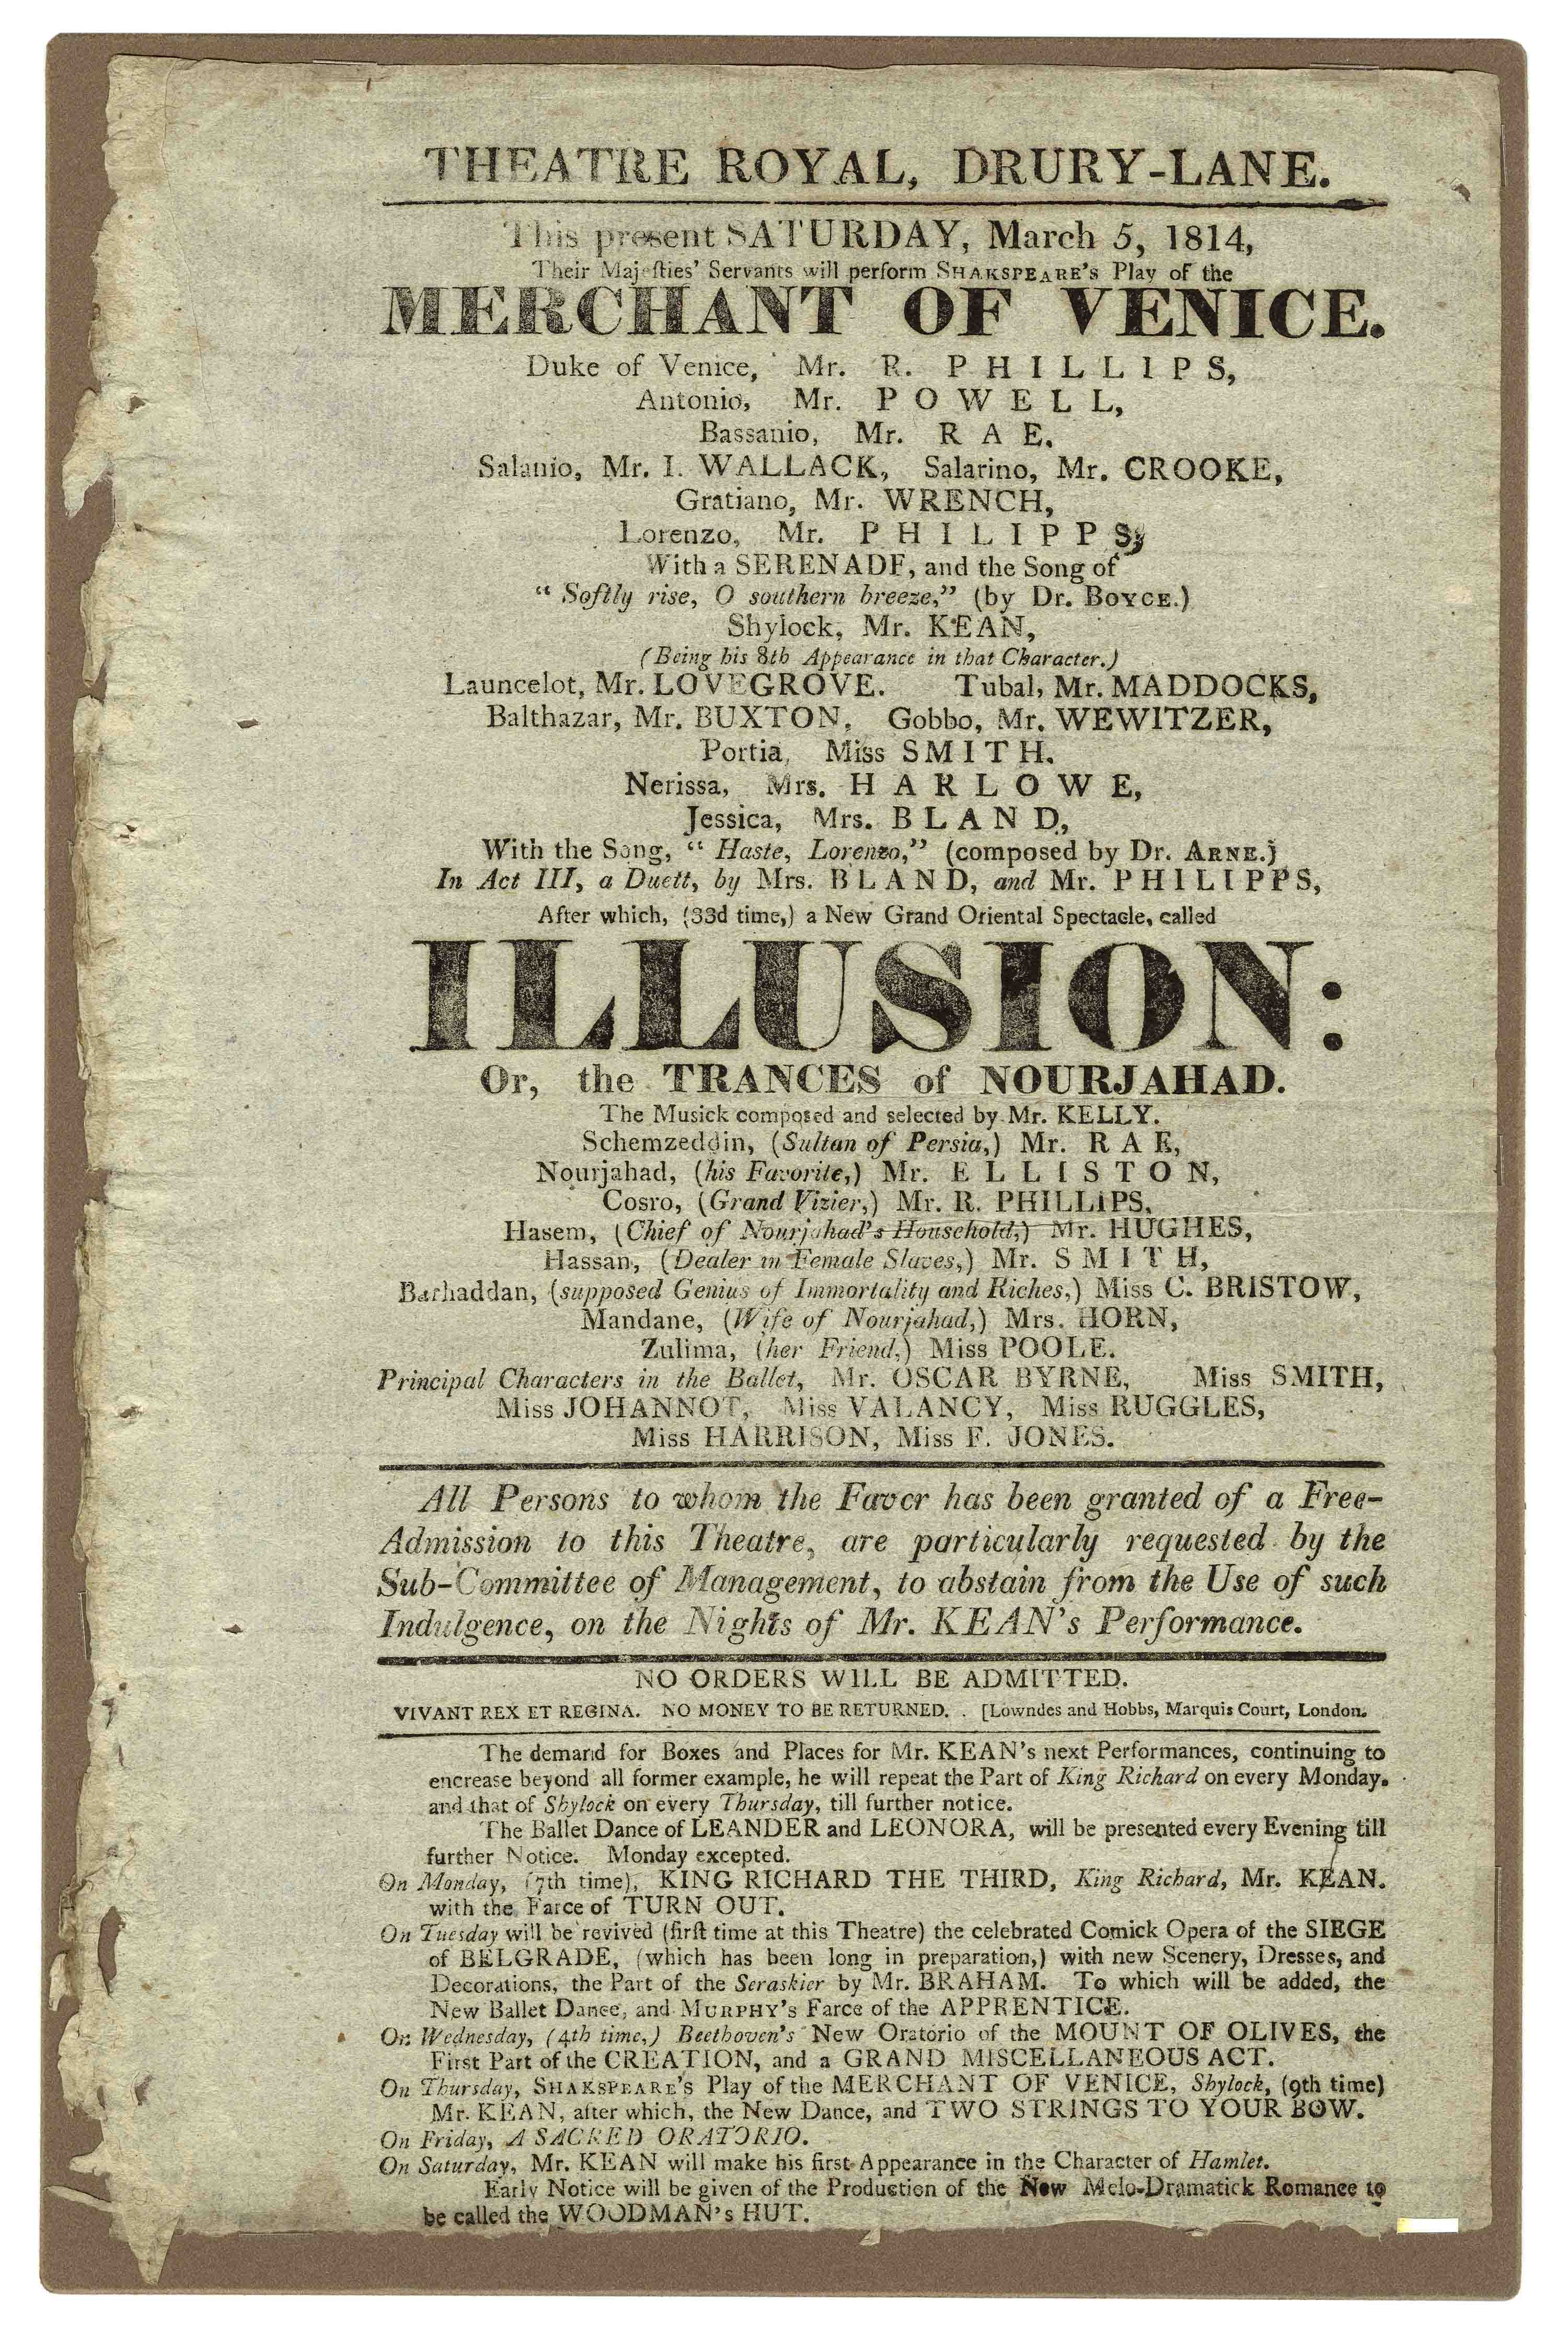 Playbill for Merchant of Venice  Drury Lane Theatre, March 5, 1814